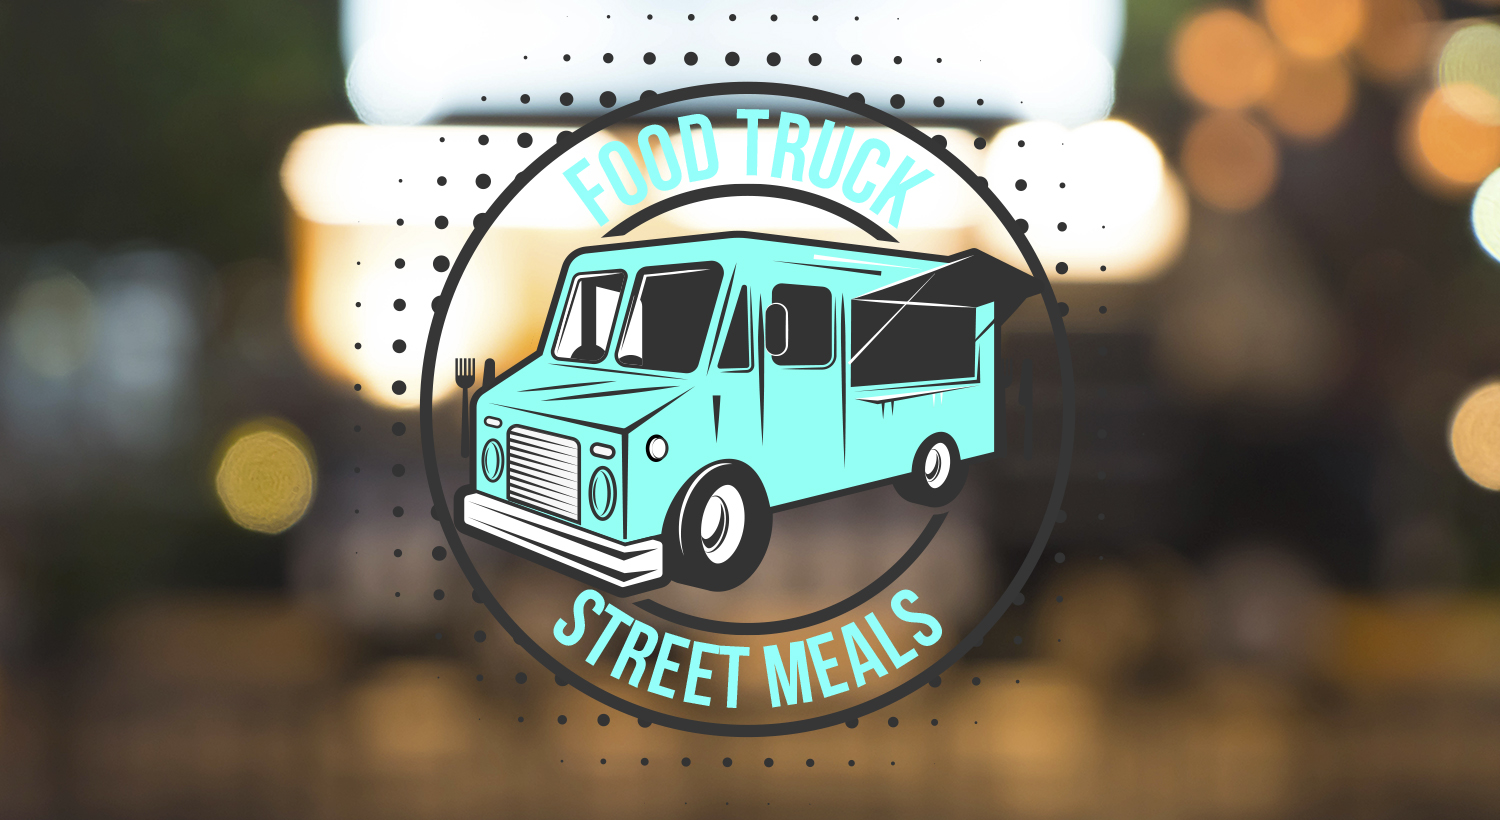 Daily Logo Challenge – Food Truck Street Meals